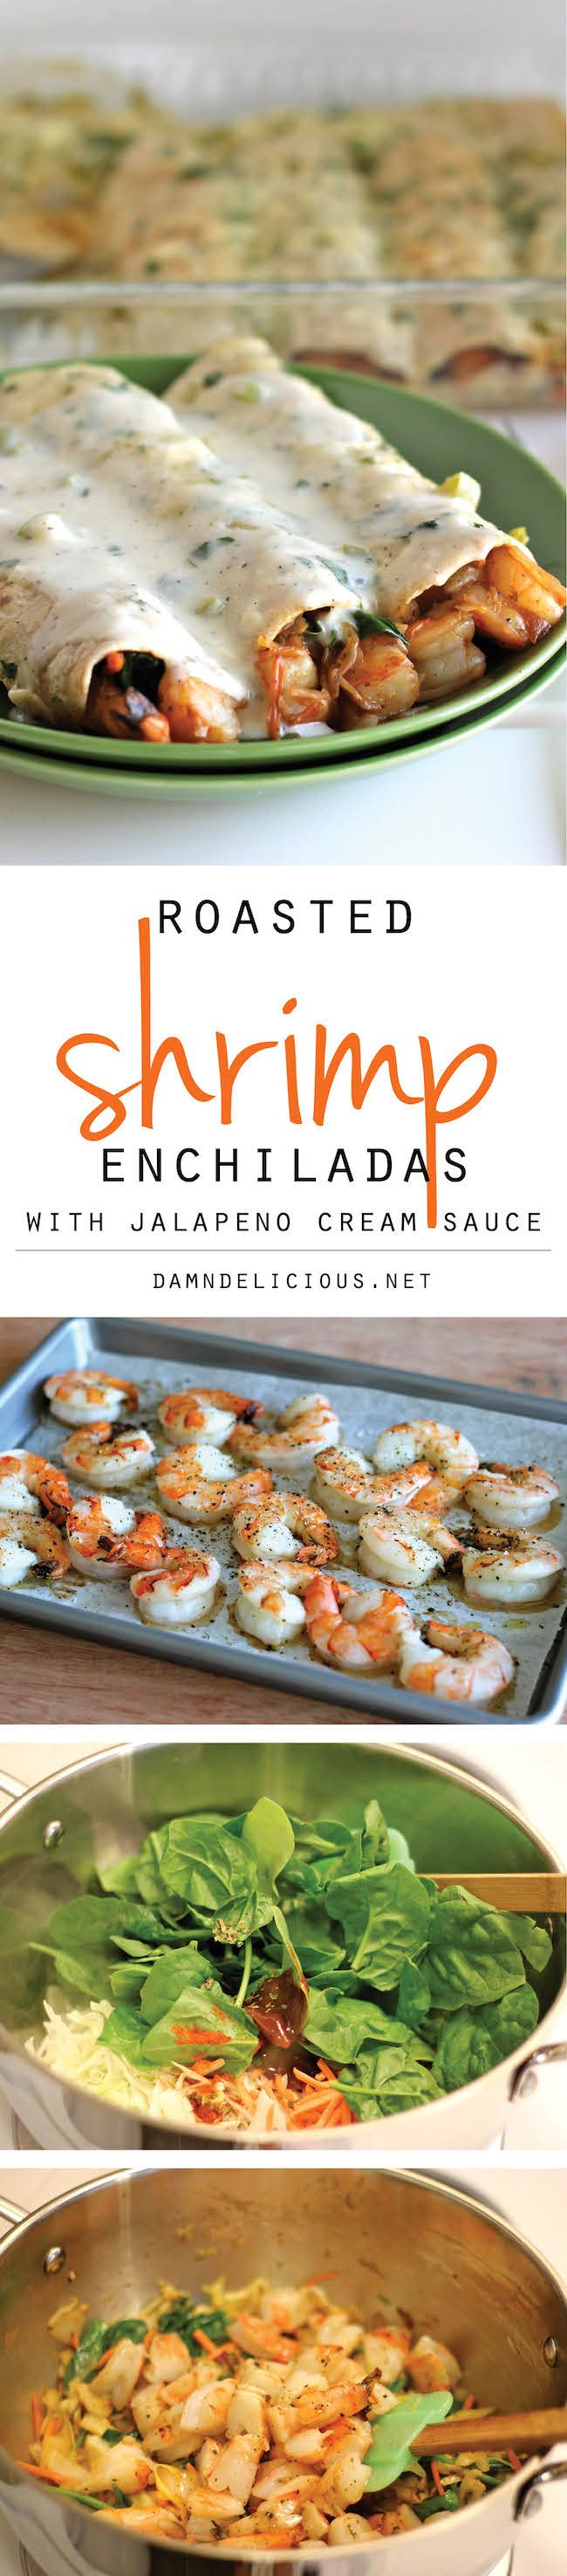 Roasted Shrimp Enchiladas with Jalapeño Cream Sauce _ Smothered in a rich, jalapeño cream sauce, how can you resist?!